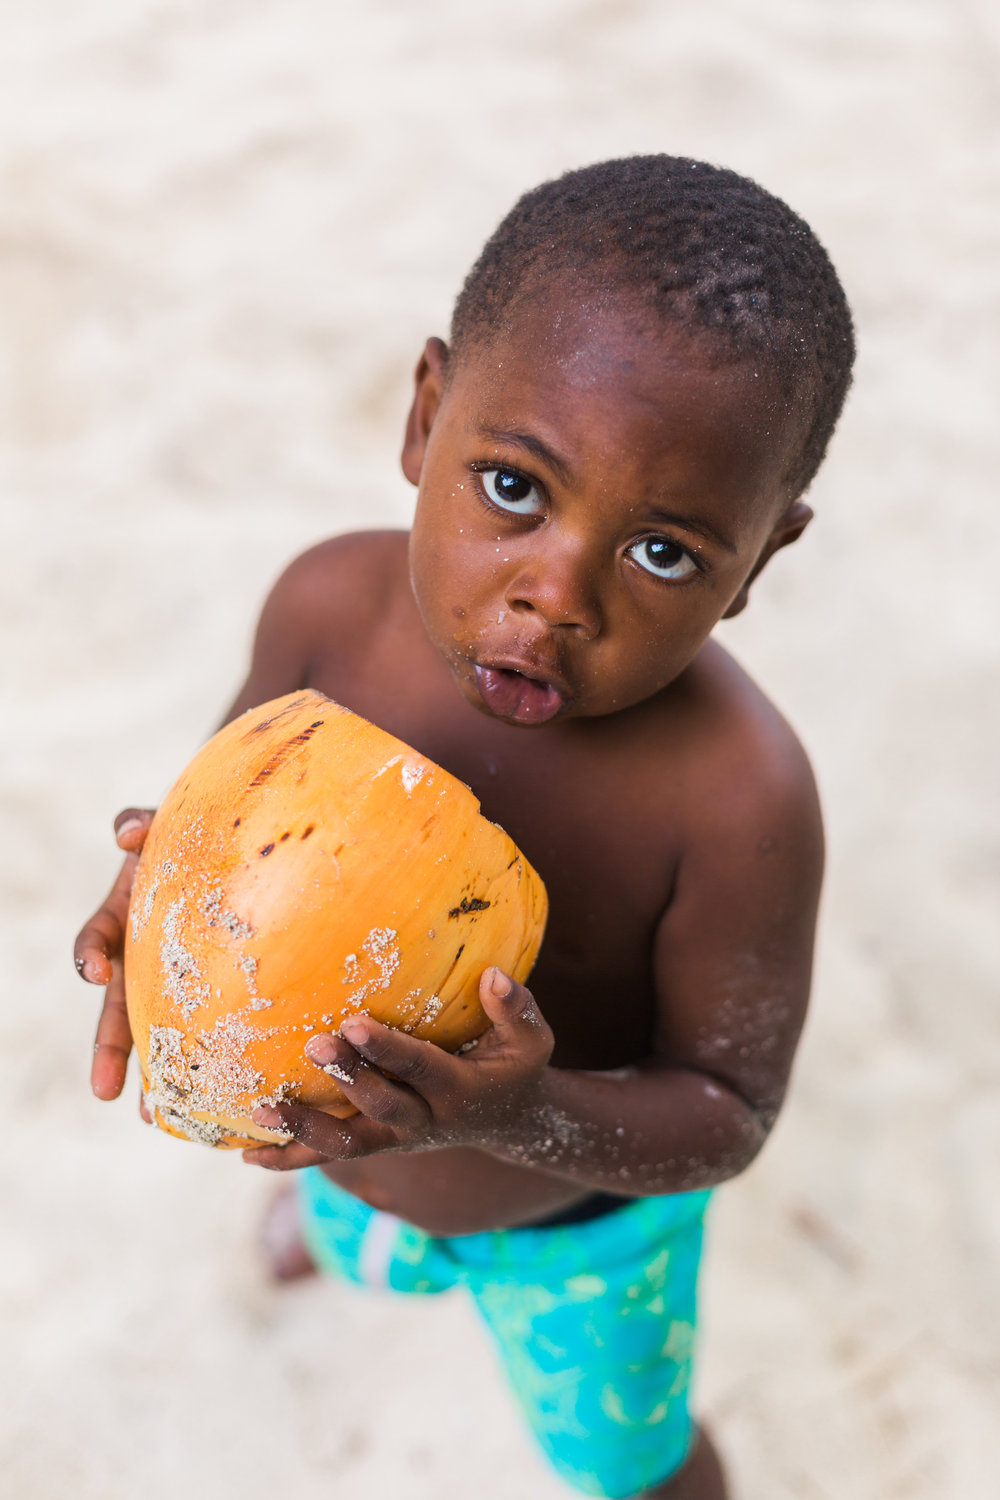 Kin Travel Haiti Trip, Everyday Pursuits, Valorie Darling Photography